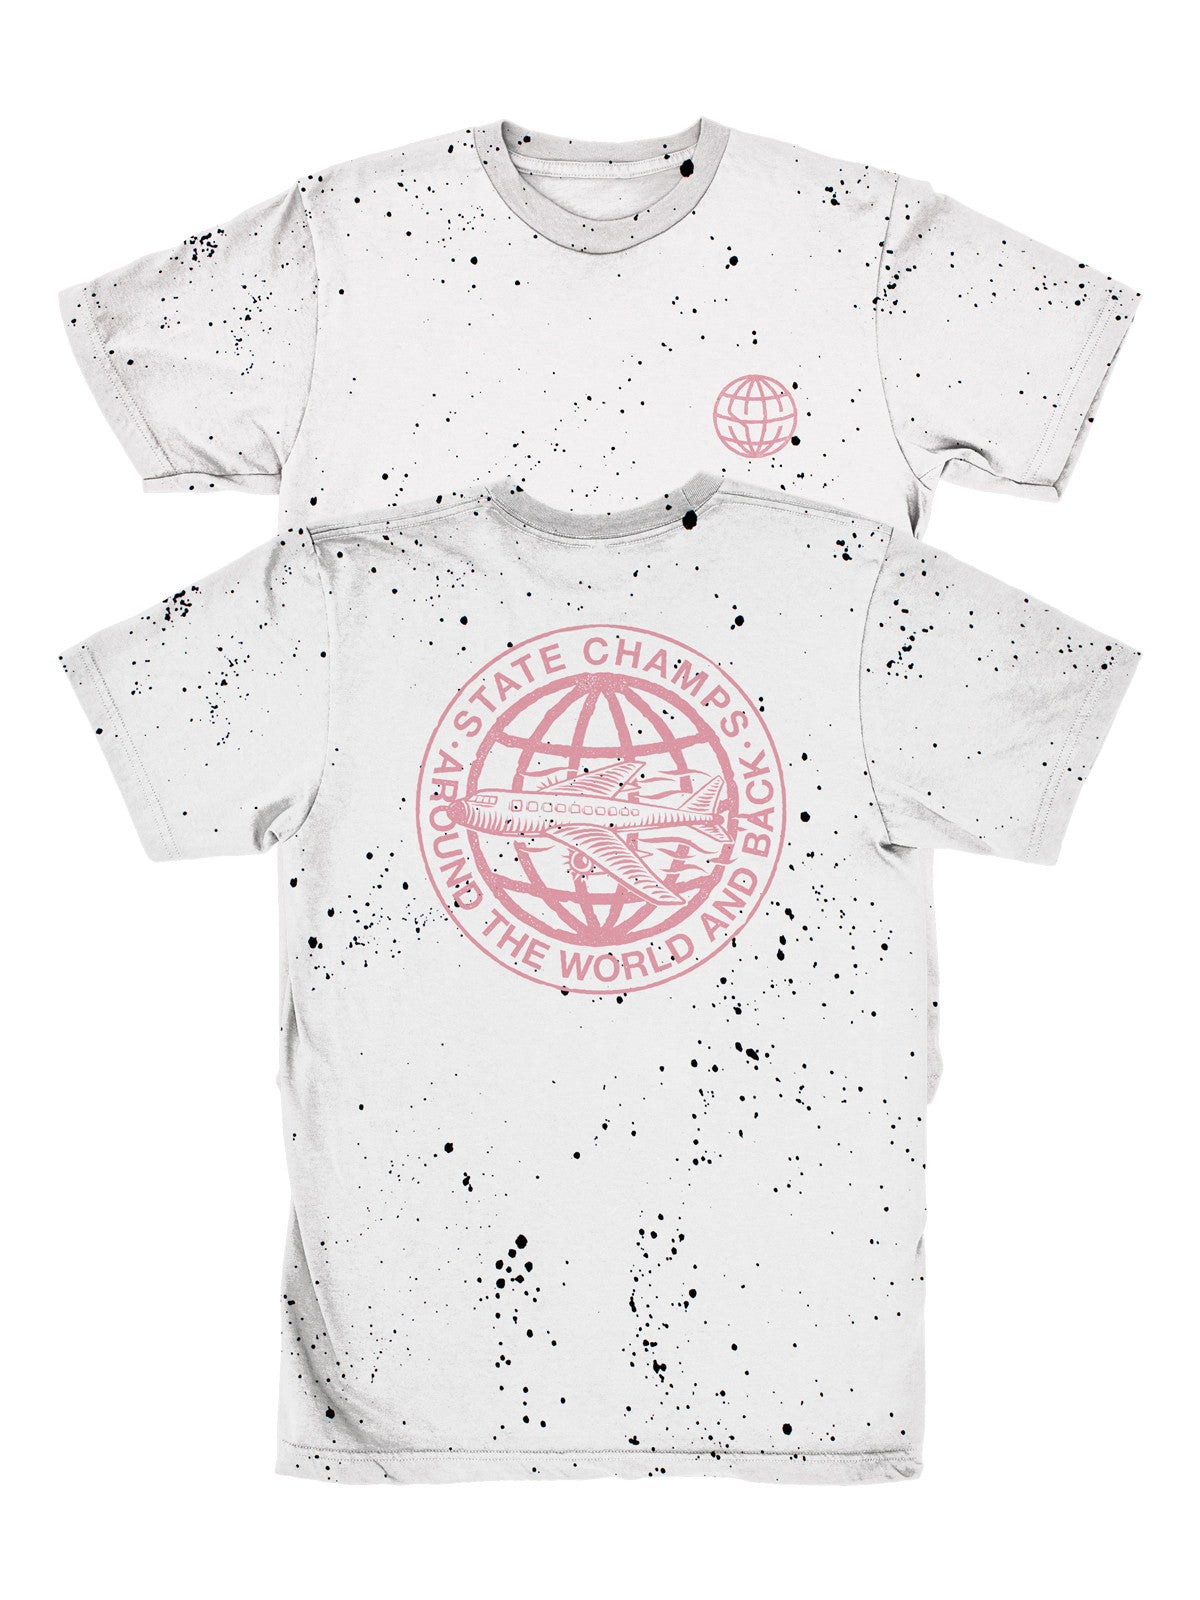 State Champs - ATWAB Shirt (Speckle) - Merch Limited